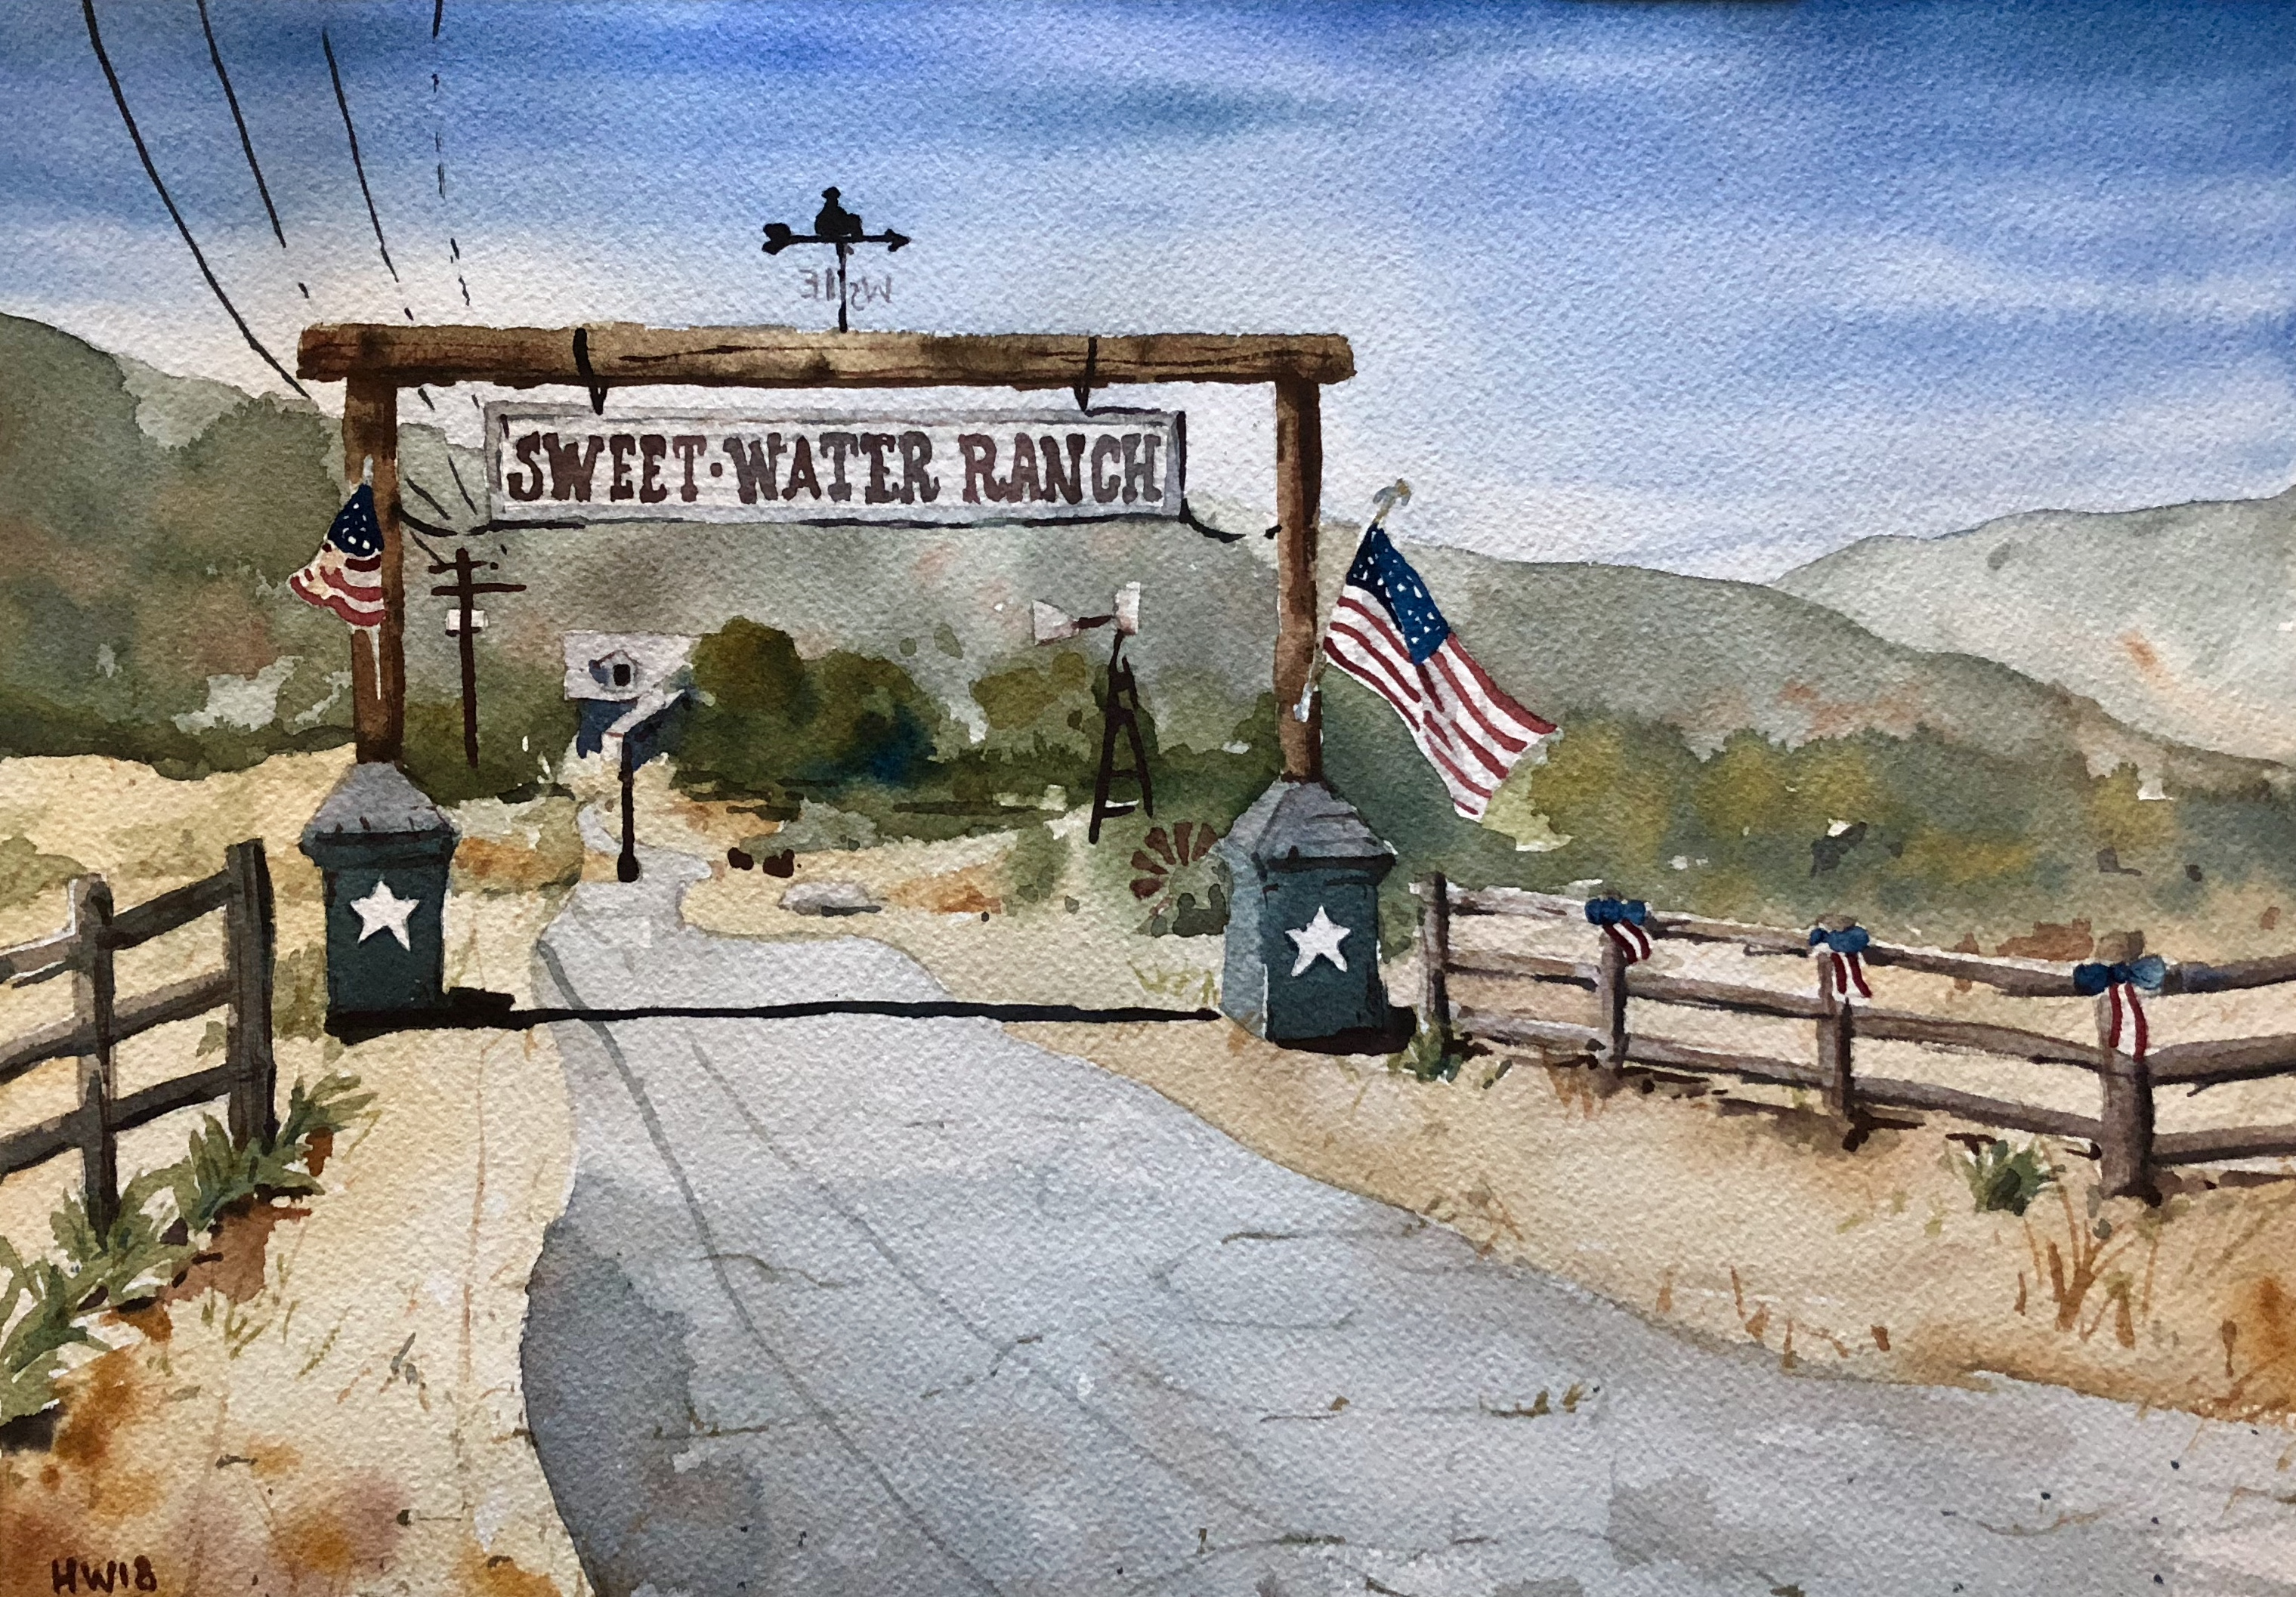 Sweet-Water Ranch